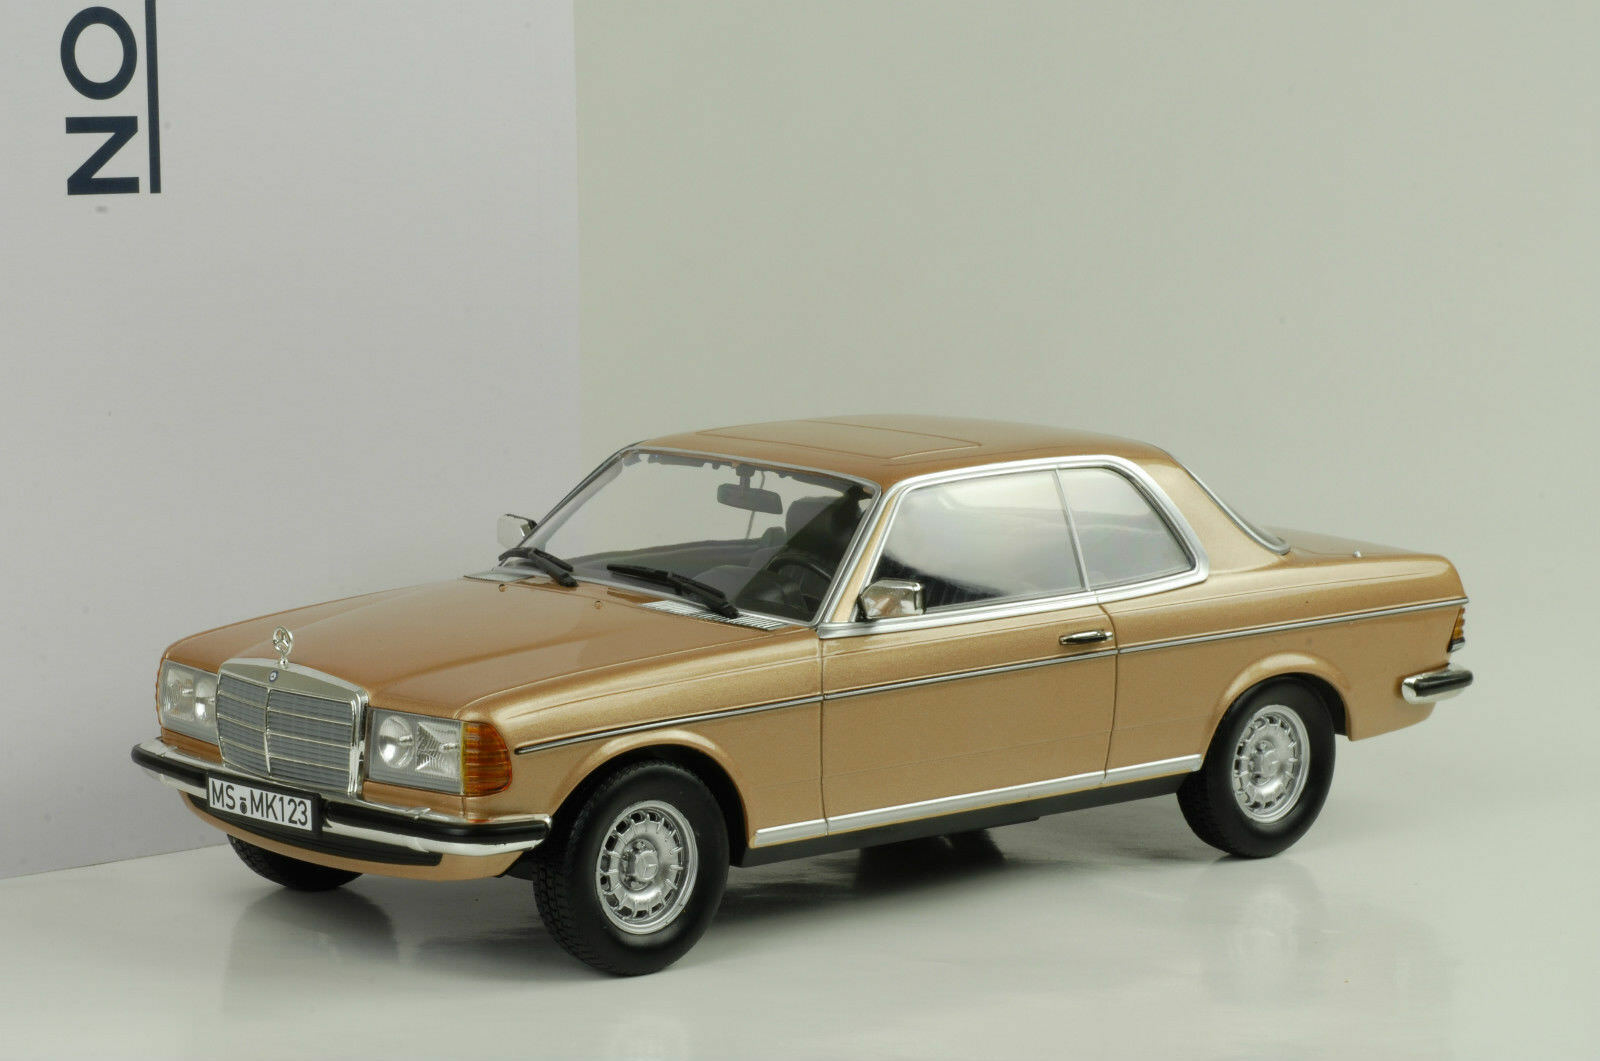 1980 Mercedes-Benz  280 CE C 123 Coupe gold metallic 1 18 Norev NEU